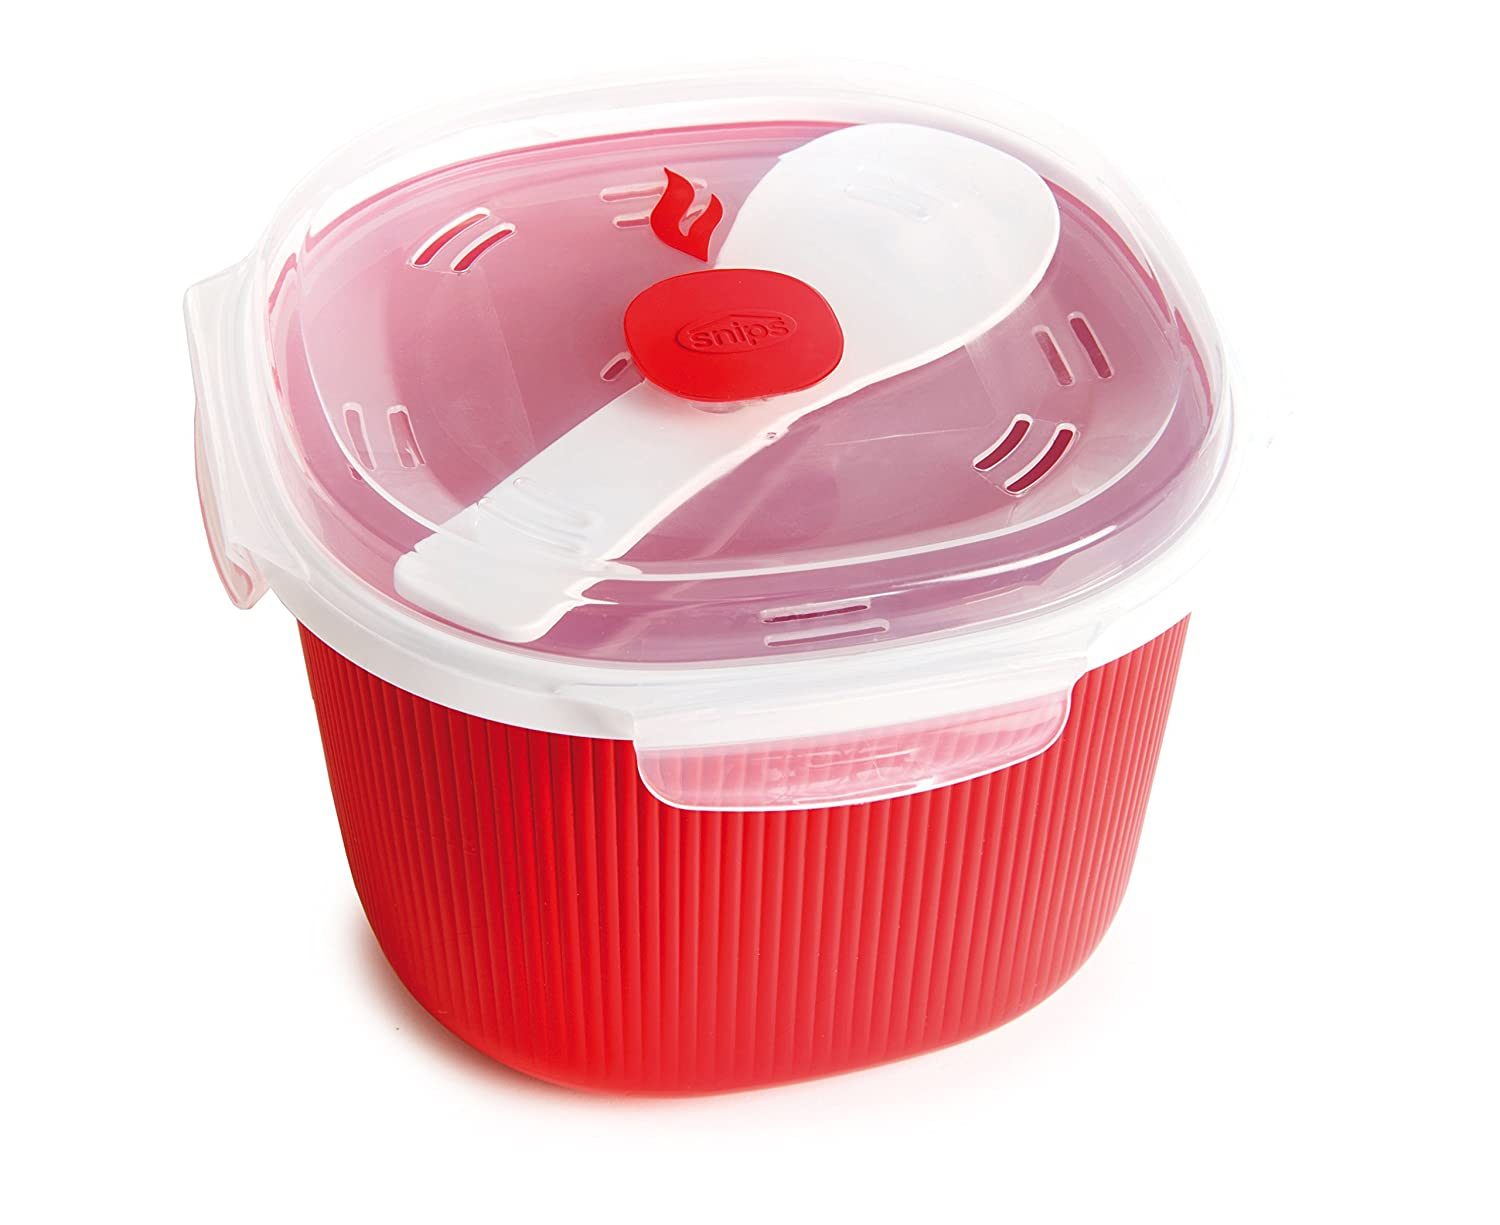 Snips Microwave Cookware Rice Cooker, 91.2 Oz./11.4 Cups, Red